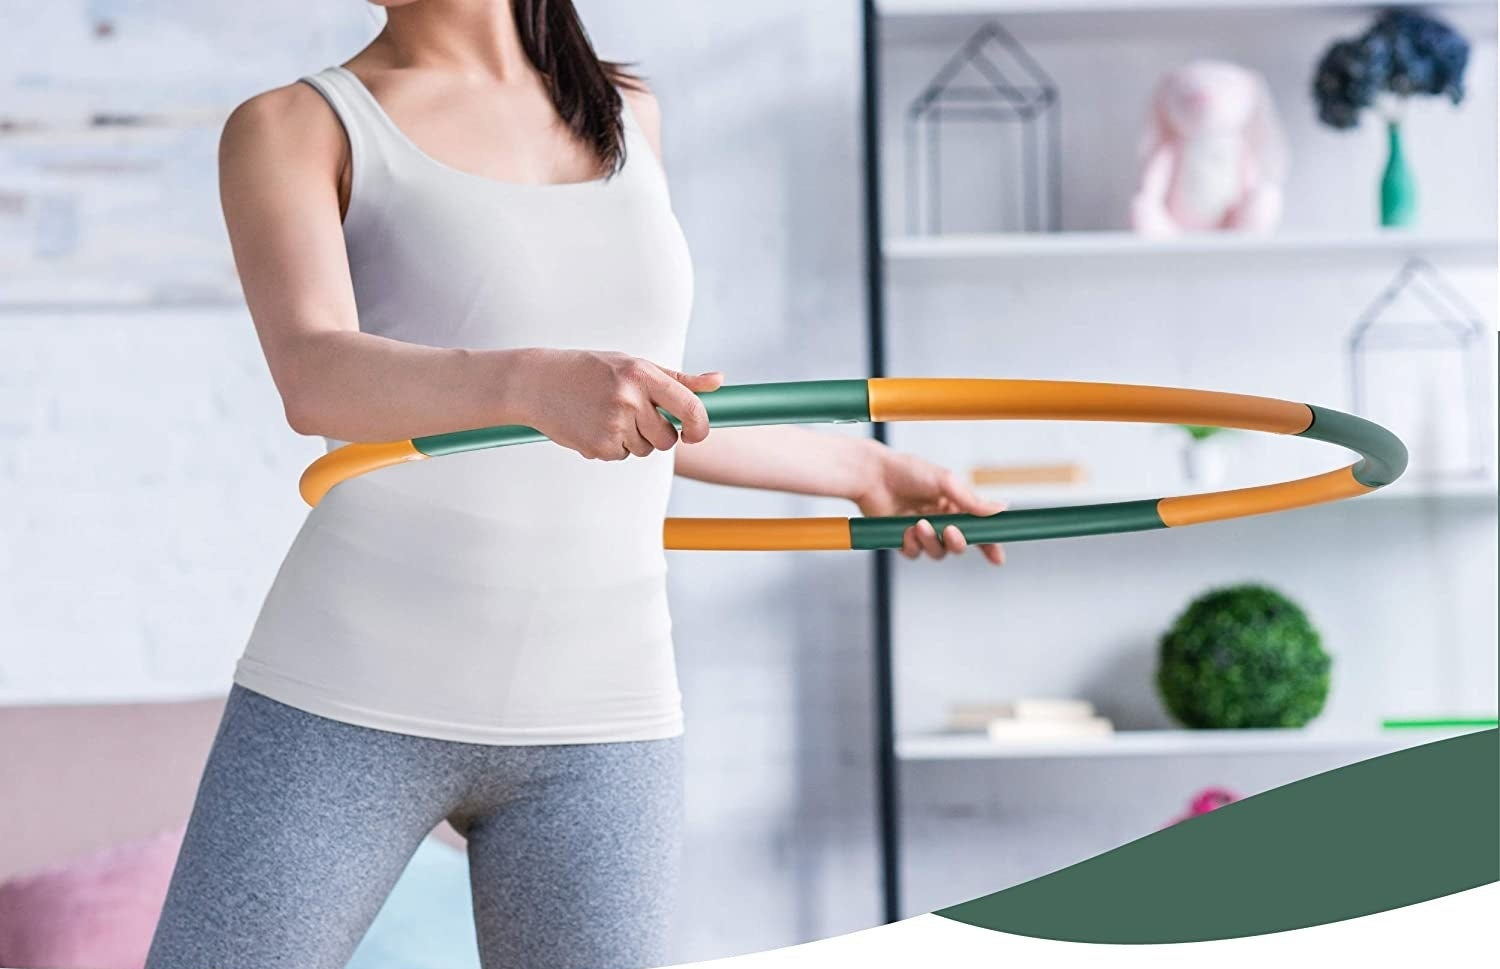 A model with the green and orange hula hoop around their waist